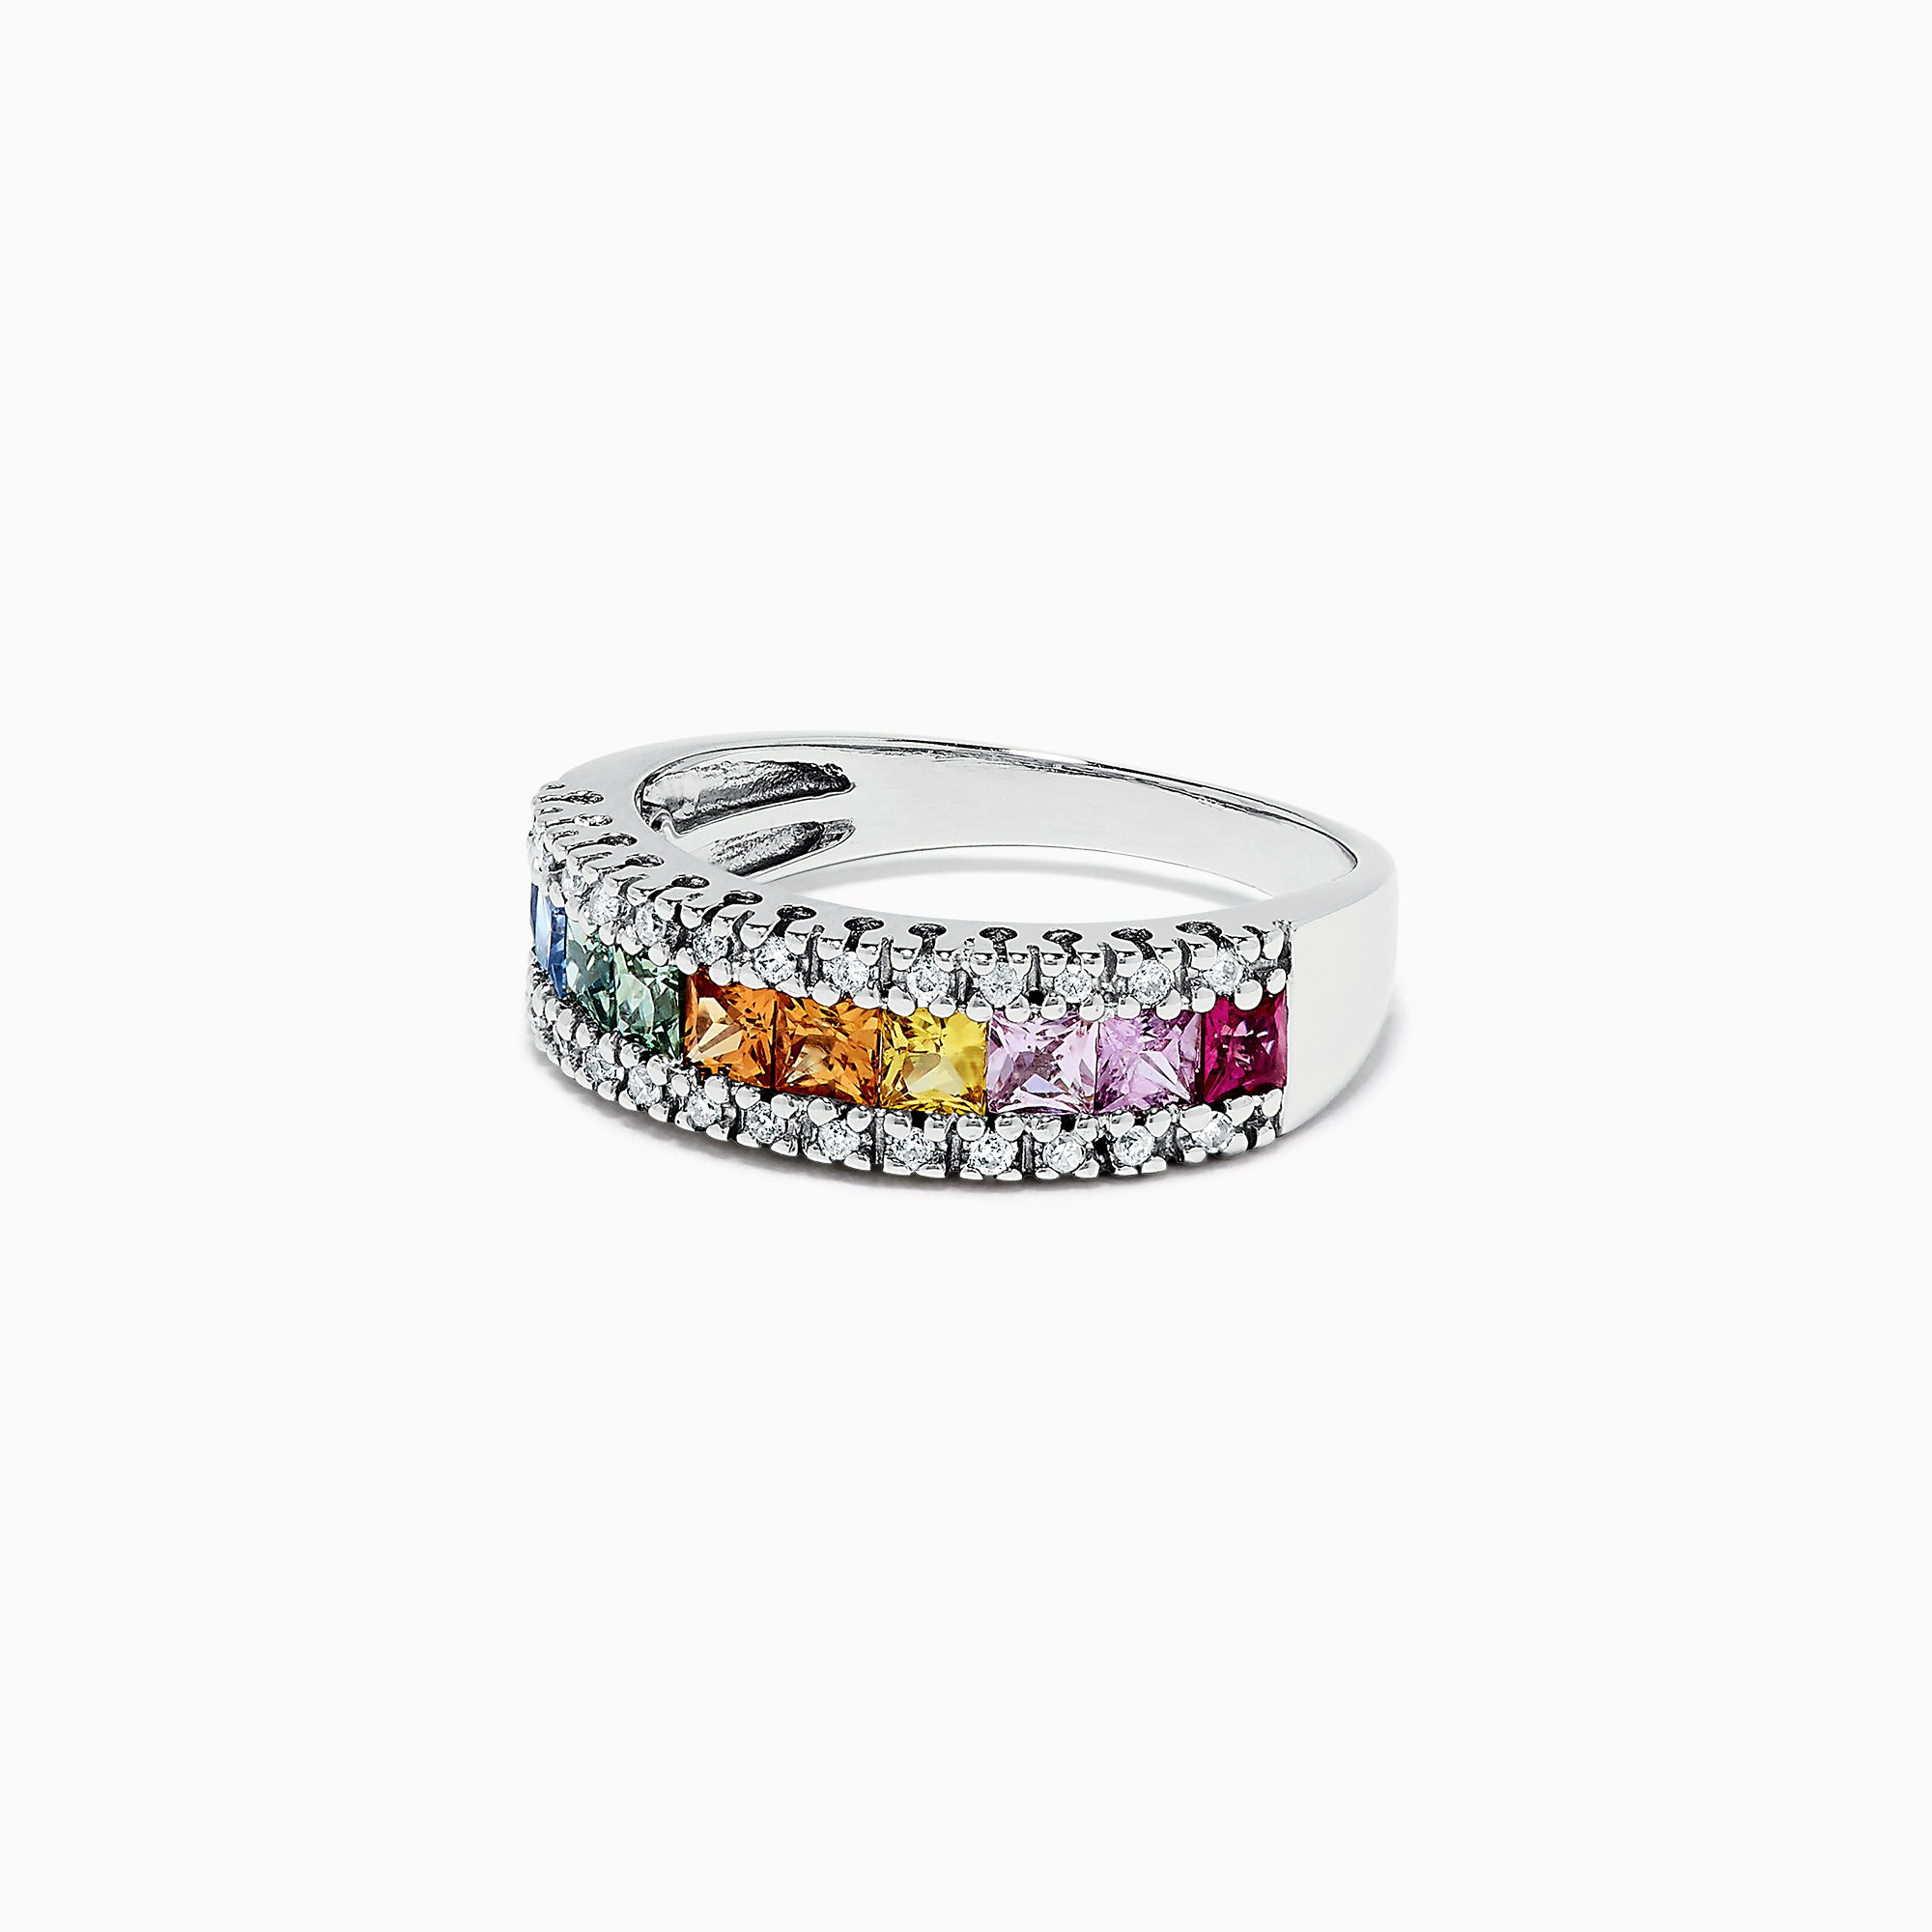 Effy Watercolors 14K White Gold Sapphire & Diamond Ring, 1.46 TCW